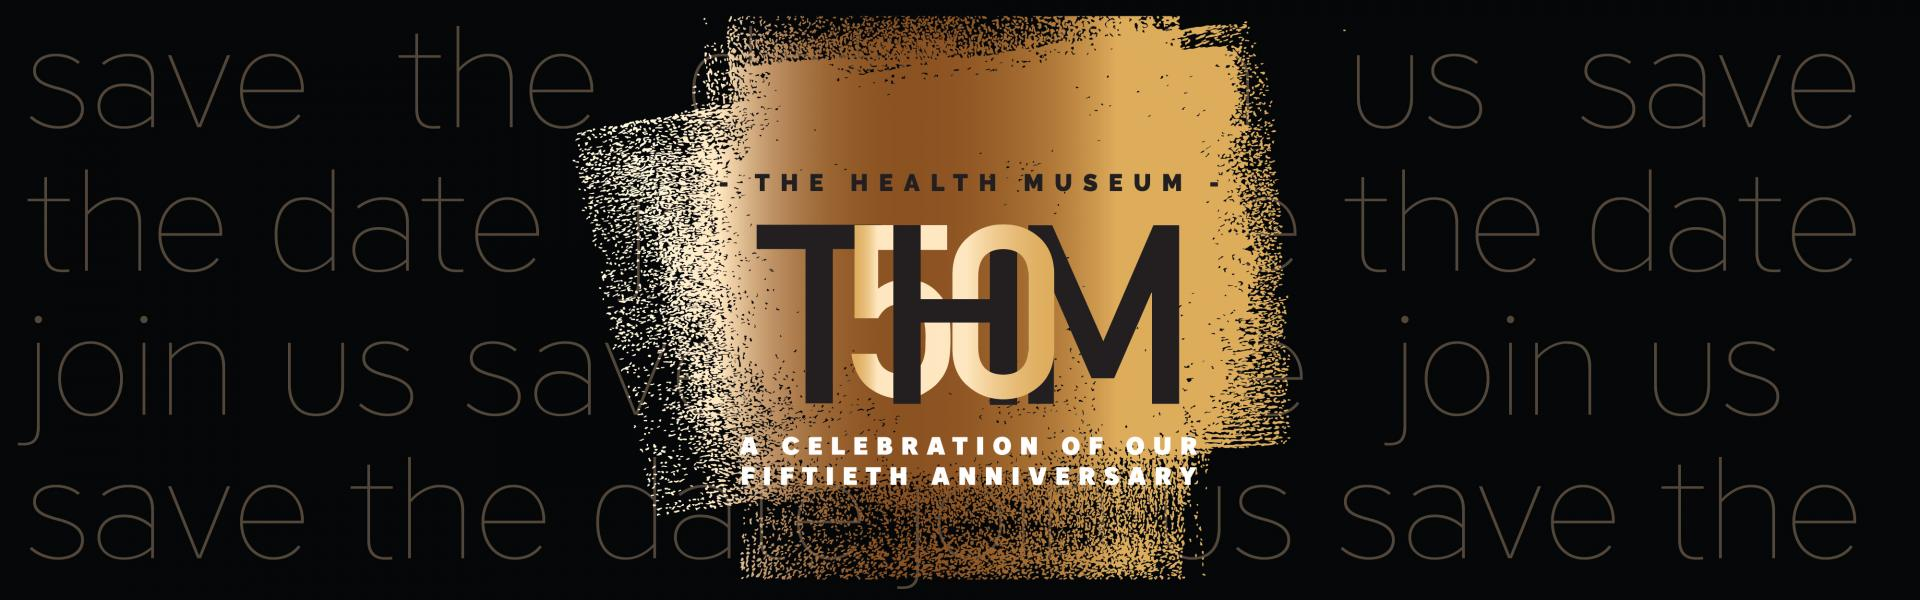 It's The Health Museum's 50th Anniversary!